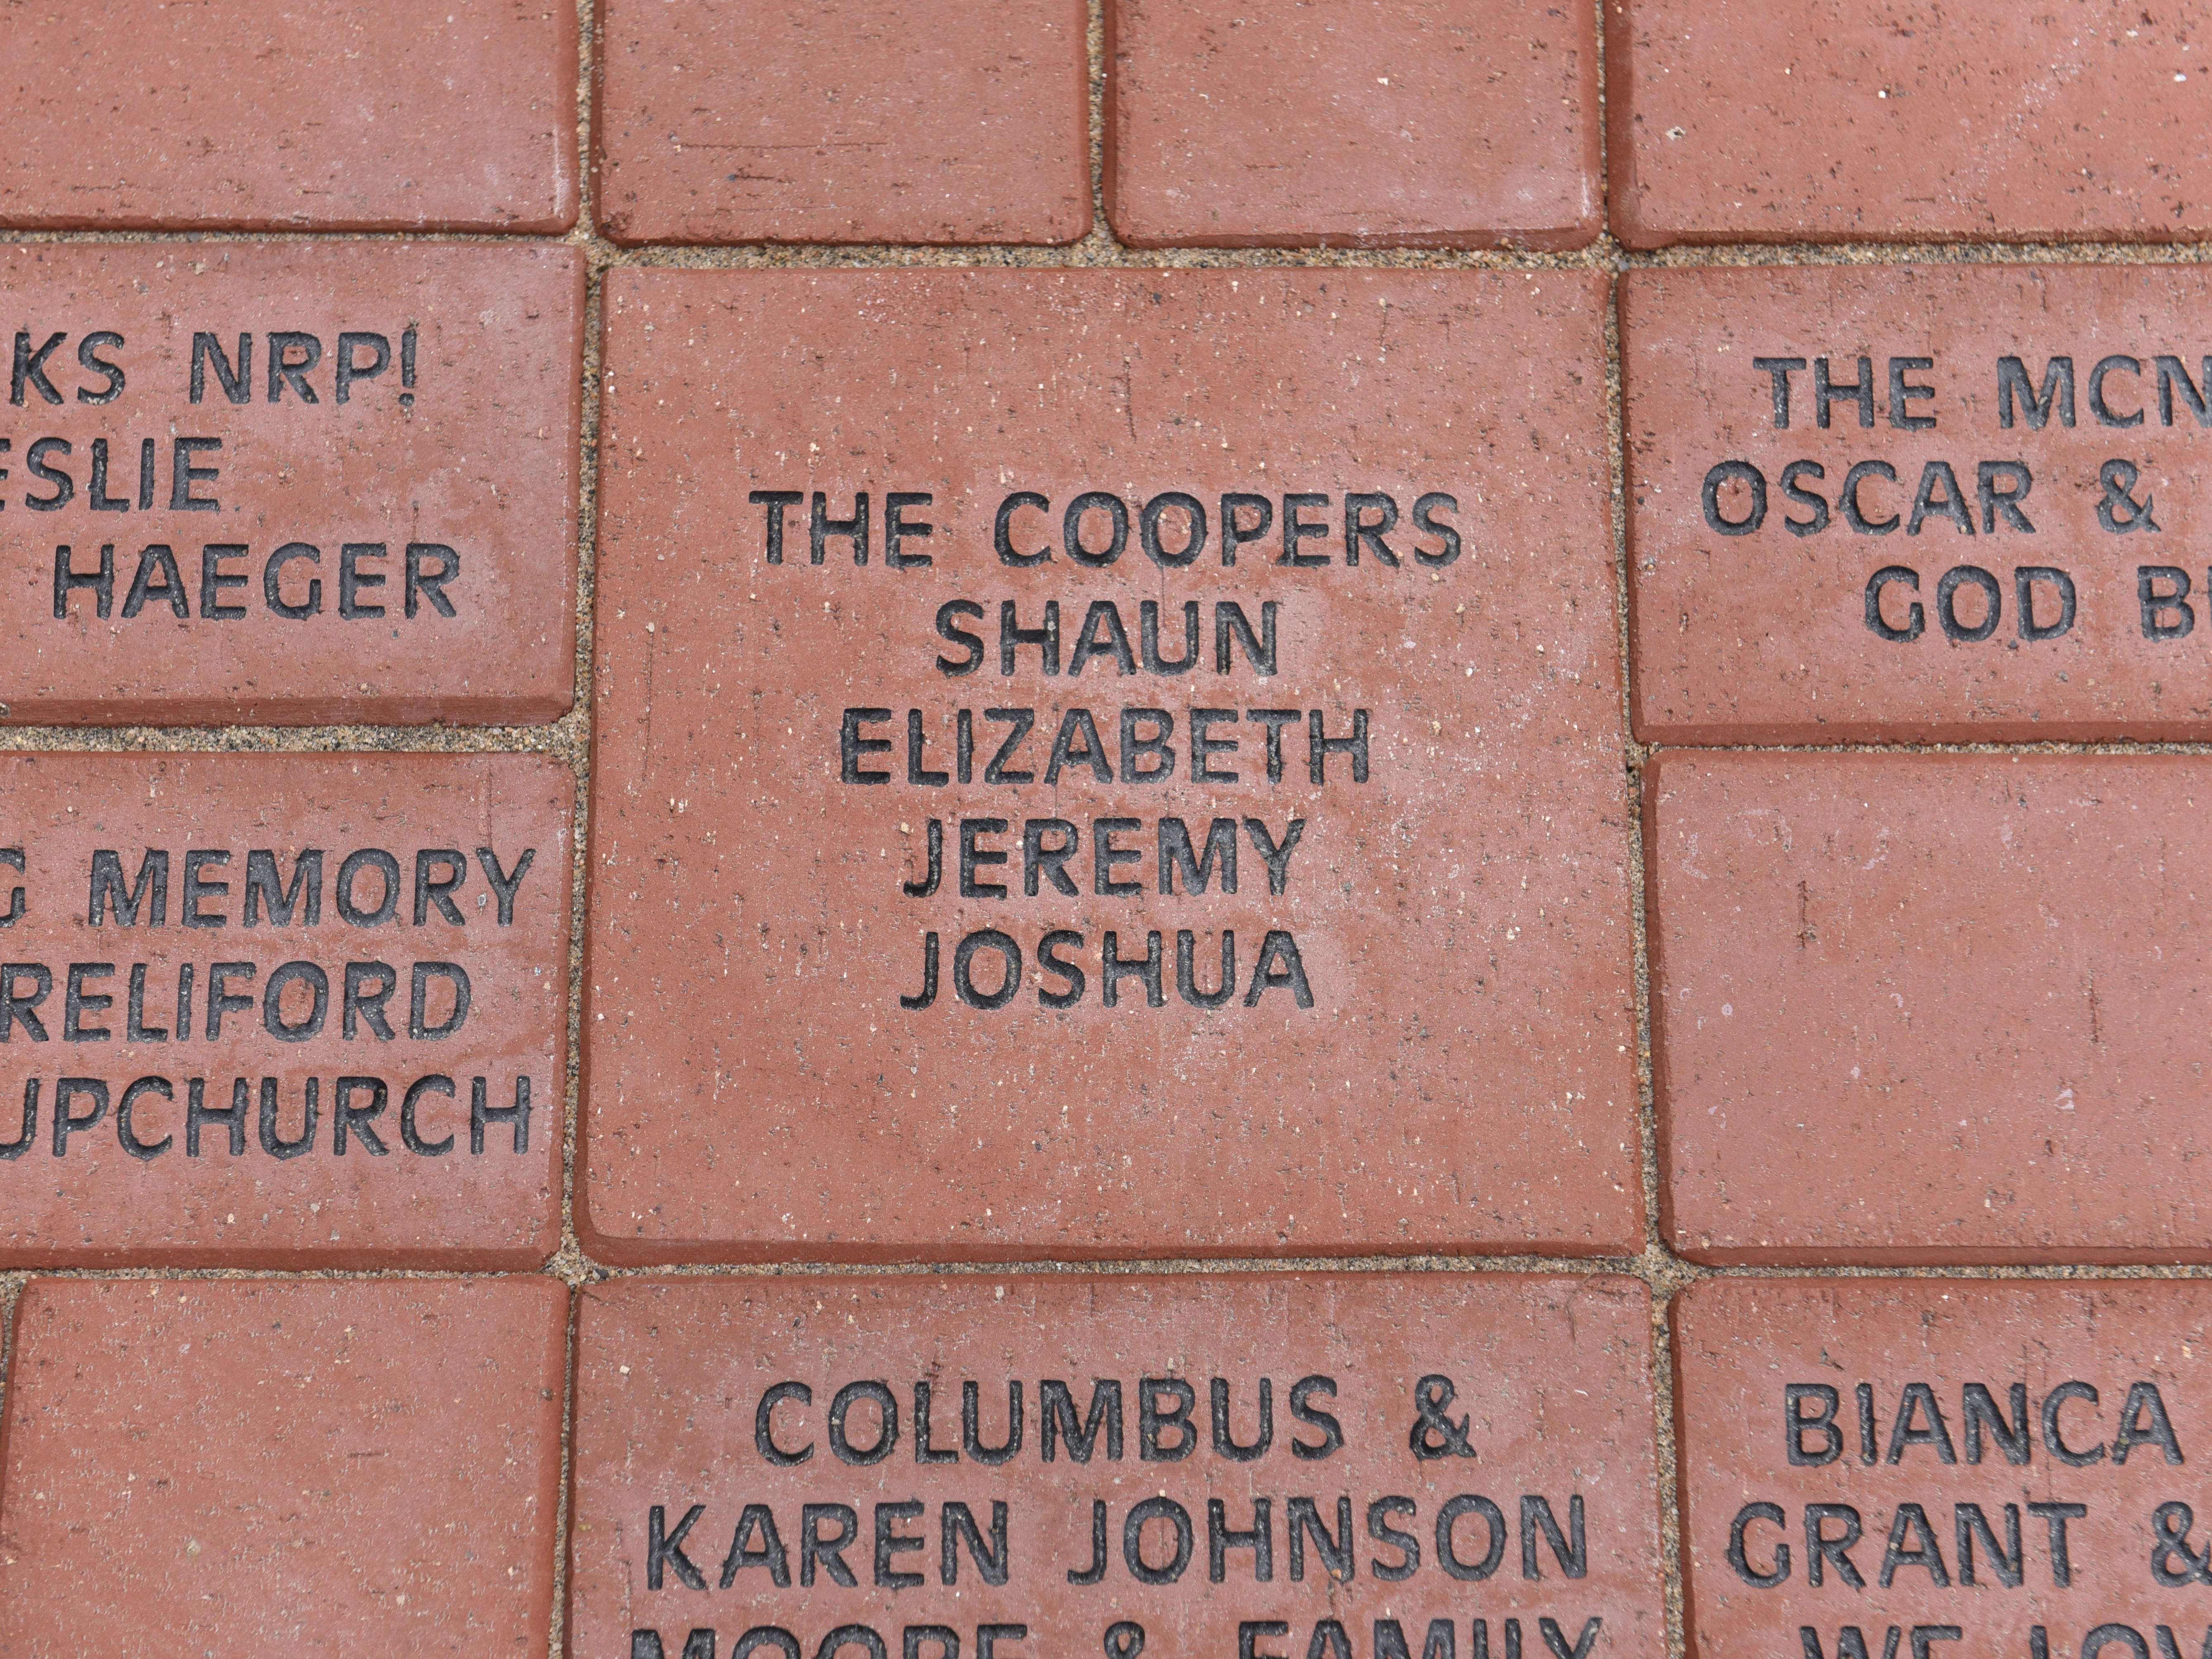 Elizabeth Cooper of Detroit shows her engraved brick paver with the names of her family during a dedication ceremony of a sculpture by artist Charles McGee at The North Rosedale Park in Detroit.